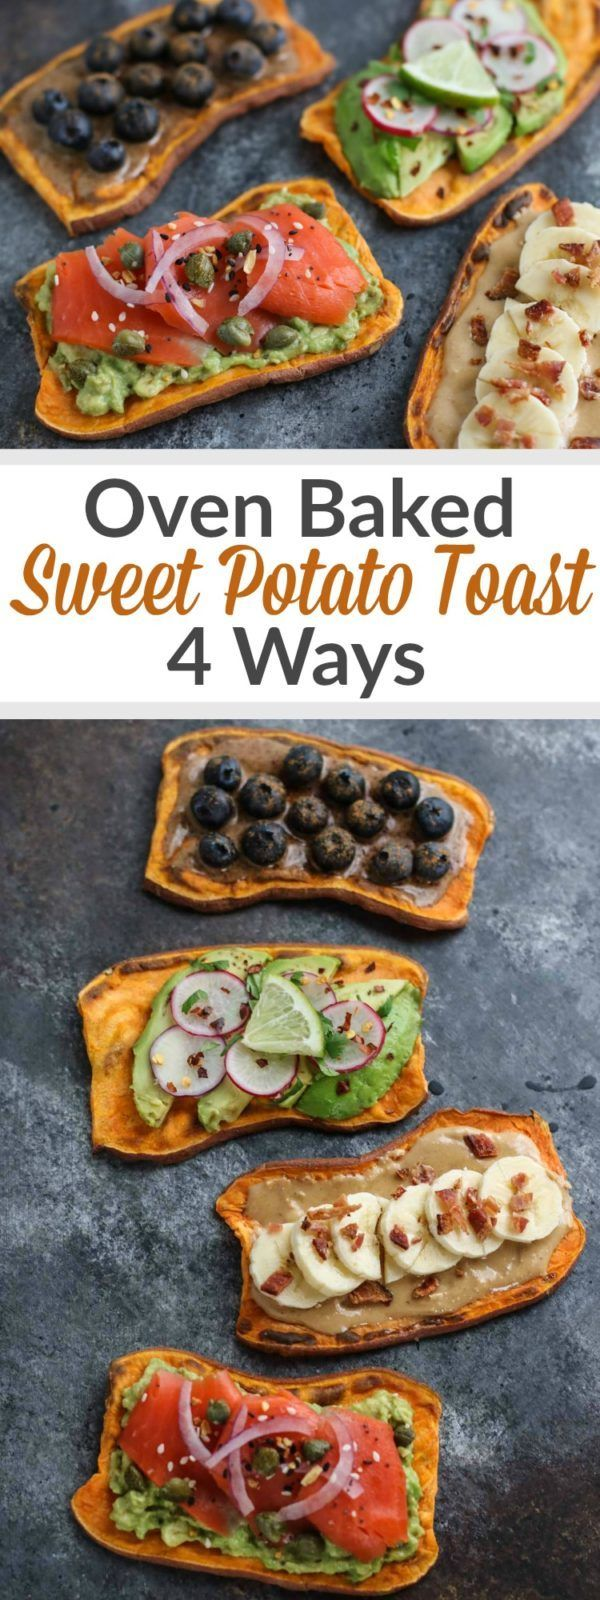 If you've been missing toast because you've given up grains - Sweet Potato Toast is the answer to your breakfast prayers! In this recipe you par-bake the slabs of sweet potato to so all they need is a quick trip through the toaster or toaster oven before they're ready to top will all the toppings you please. | http://therealfoodrds.com/oven-baked-sweet-potato-toast-4-ways/